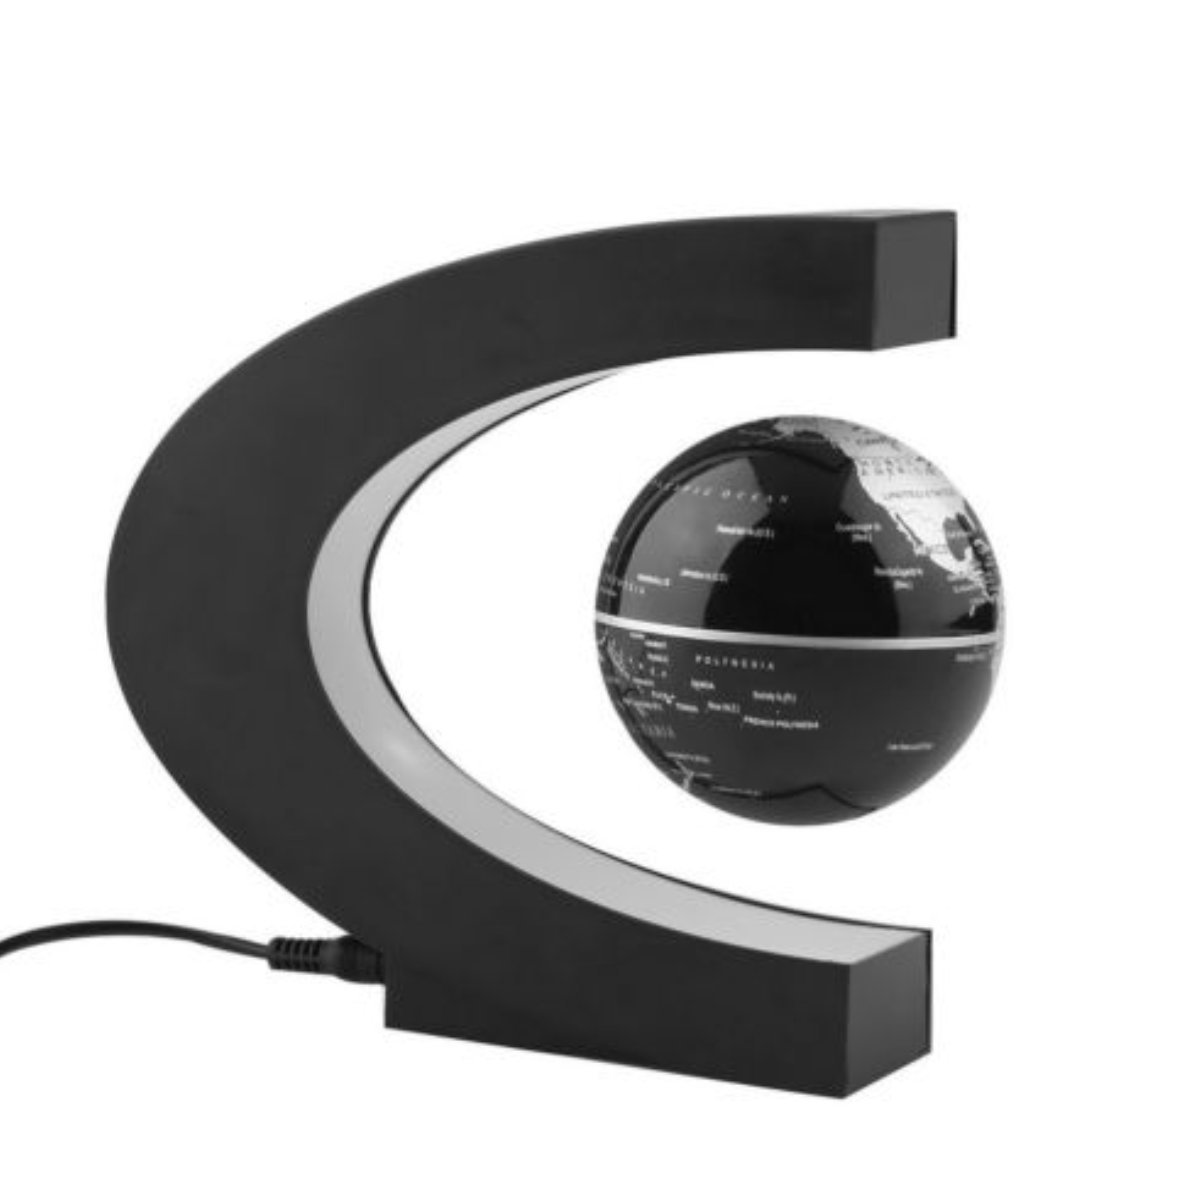 C shape Decoration Magnetic Levitation Floating Globe World Map with Colored LED Light Anti Gravity Globe for Educational Learning Geographic Political World Map,Gift,Home School Desk Decor by wantis